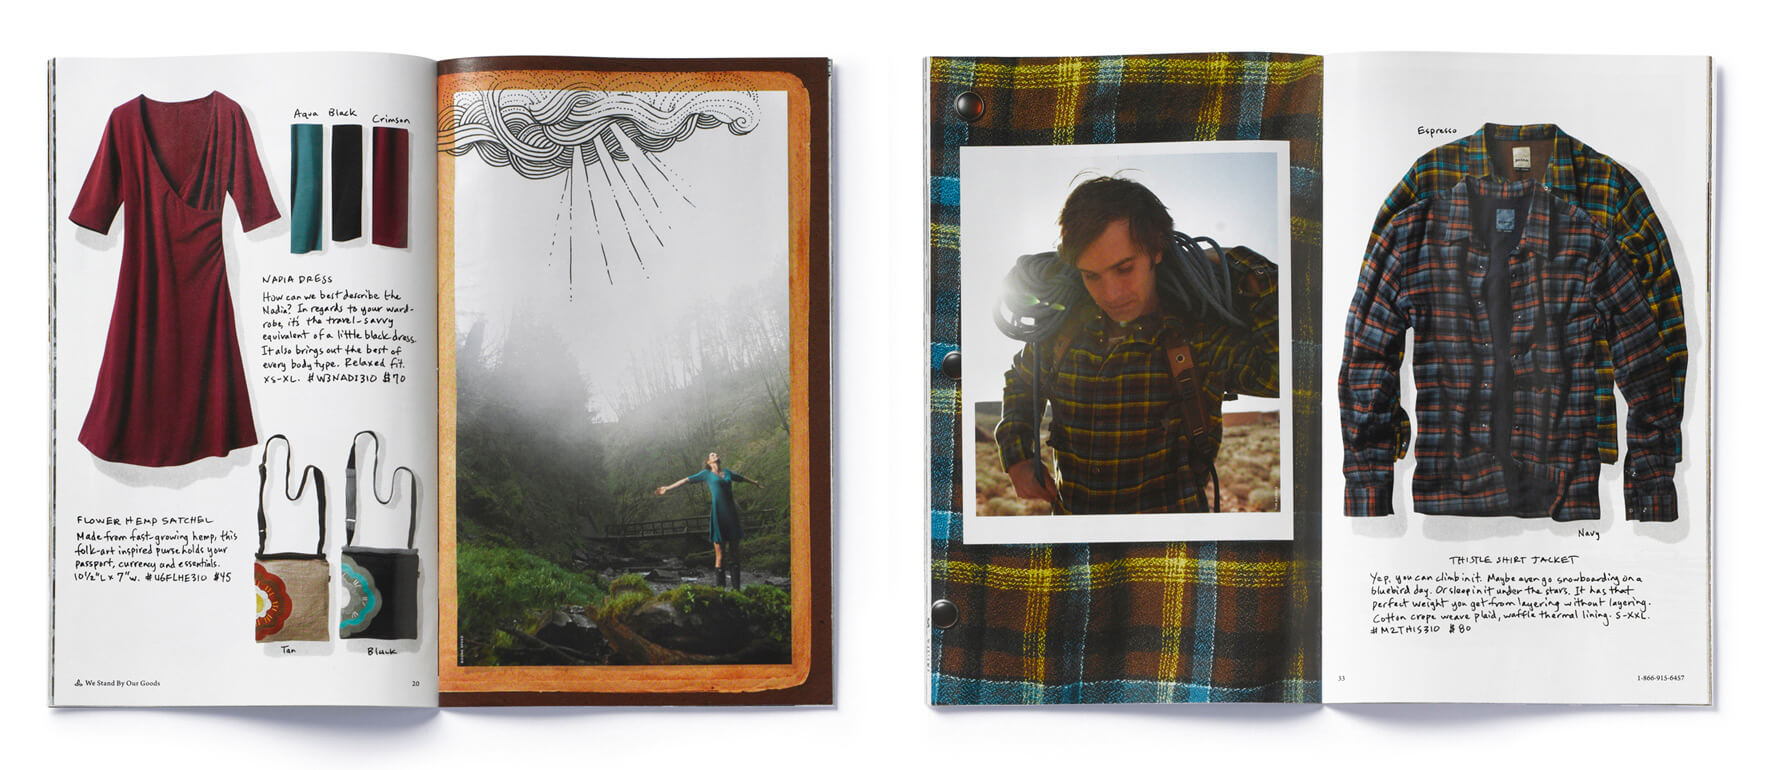 2 open catalogs showing woman in dress and man with plaid shirt